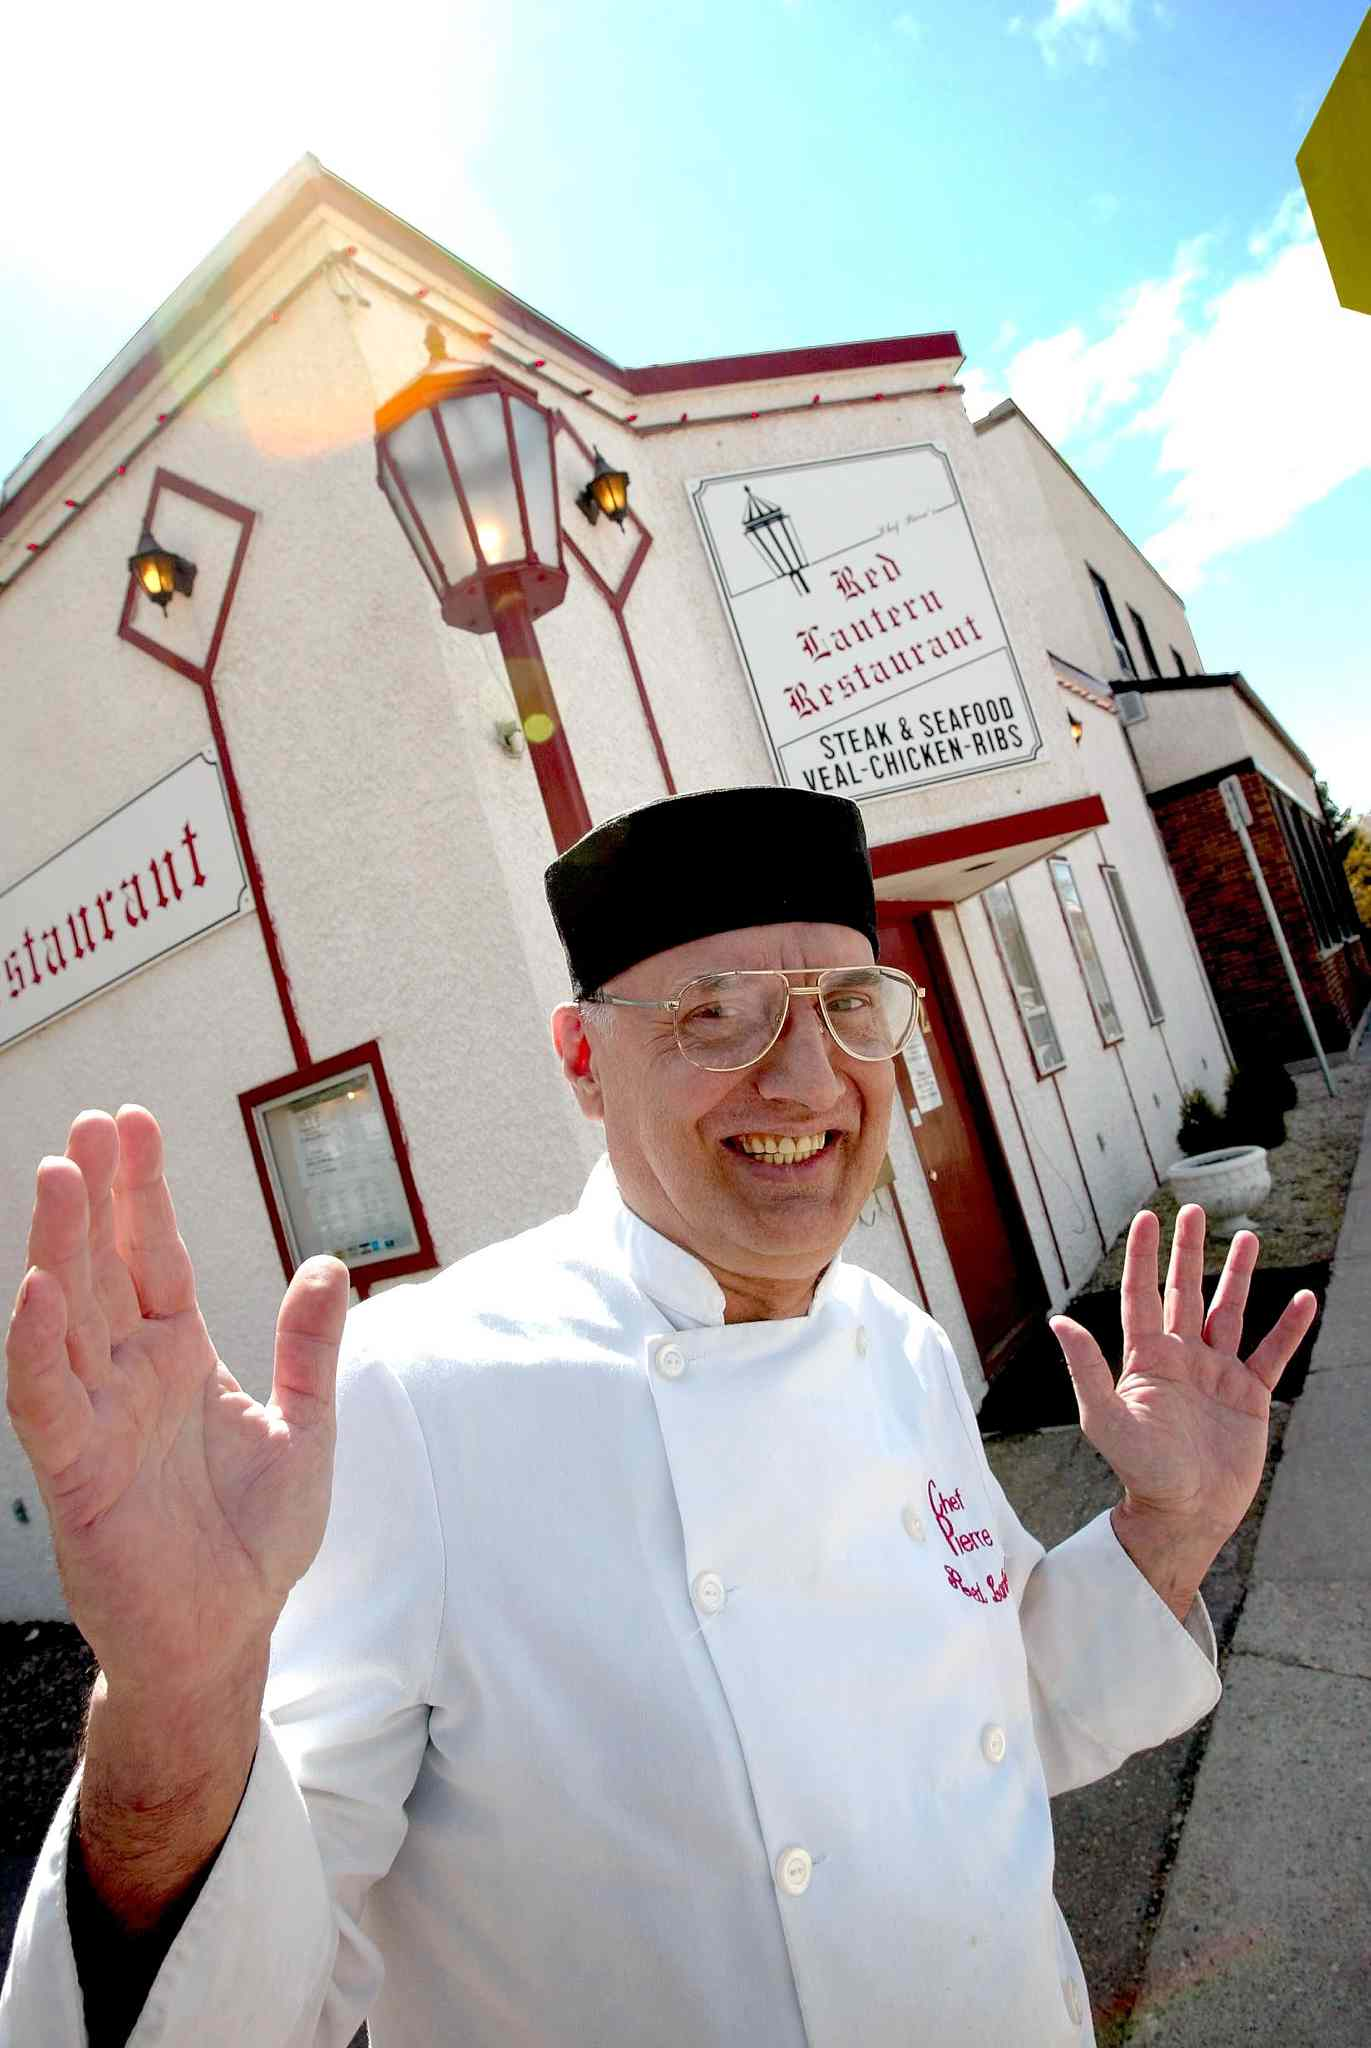 Red Lantern owner and chef Pierre Molin stands in front of the restaurant in 2002. (Jeff de Booy / Winnipeg Free Press files)